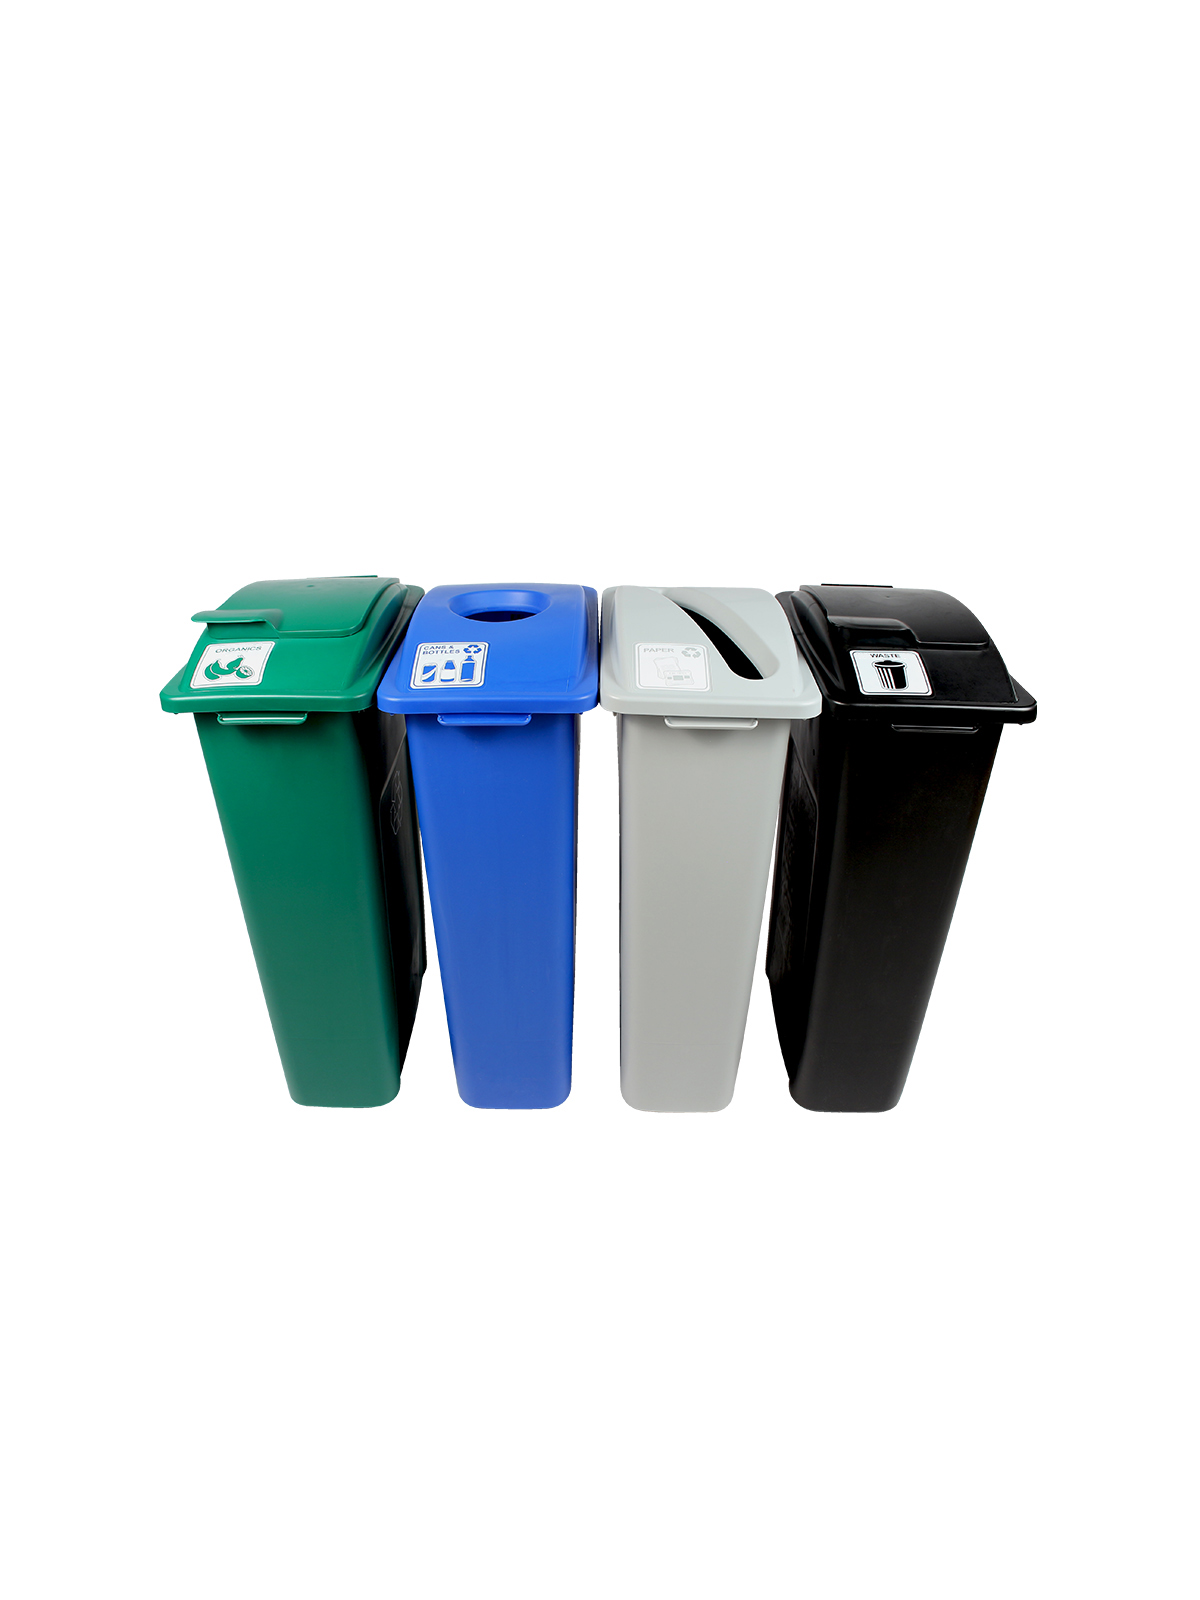 WASTE WATCHER - Quad - Cans & Bottles-Paper-Organics-Waste - Circle-Slot-Solid Lift-Solid Lift - Blue-Grey-Green-Black